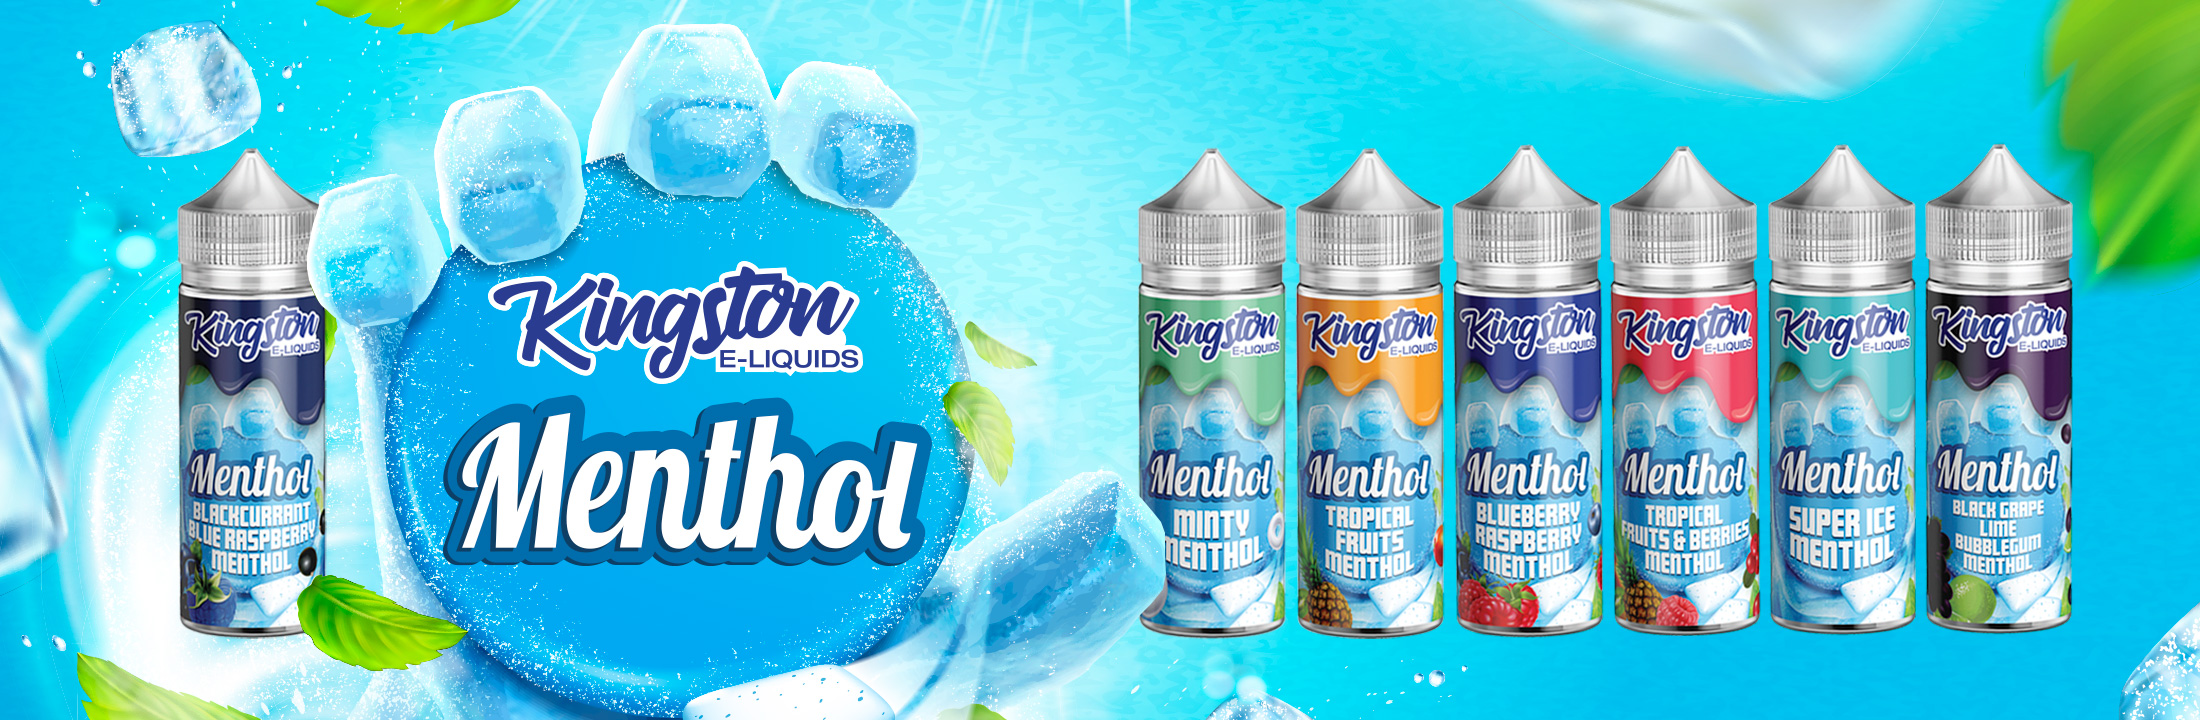 Kingston Menthol - available now